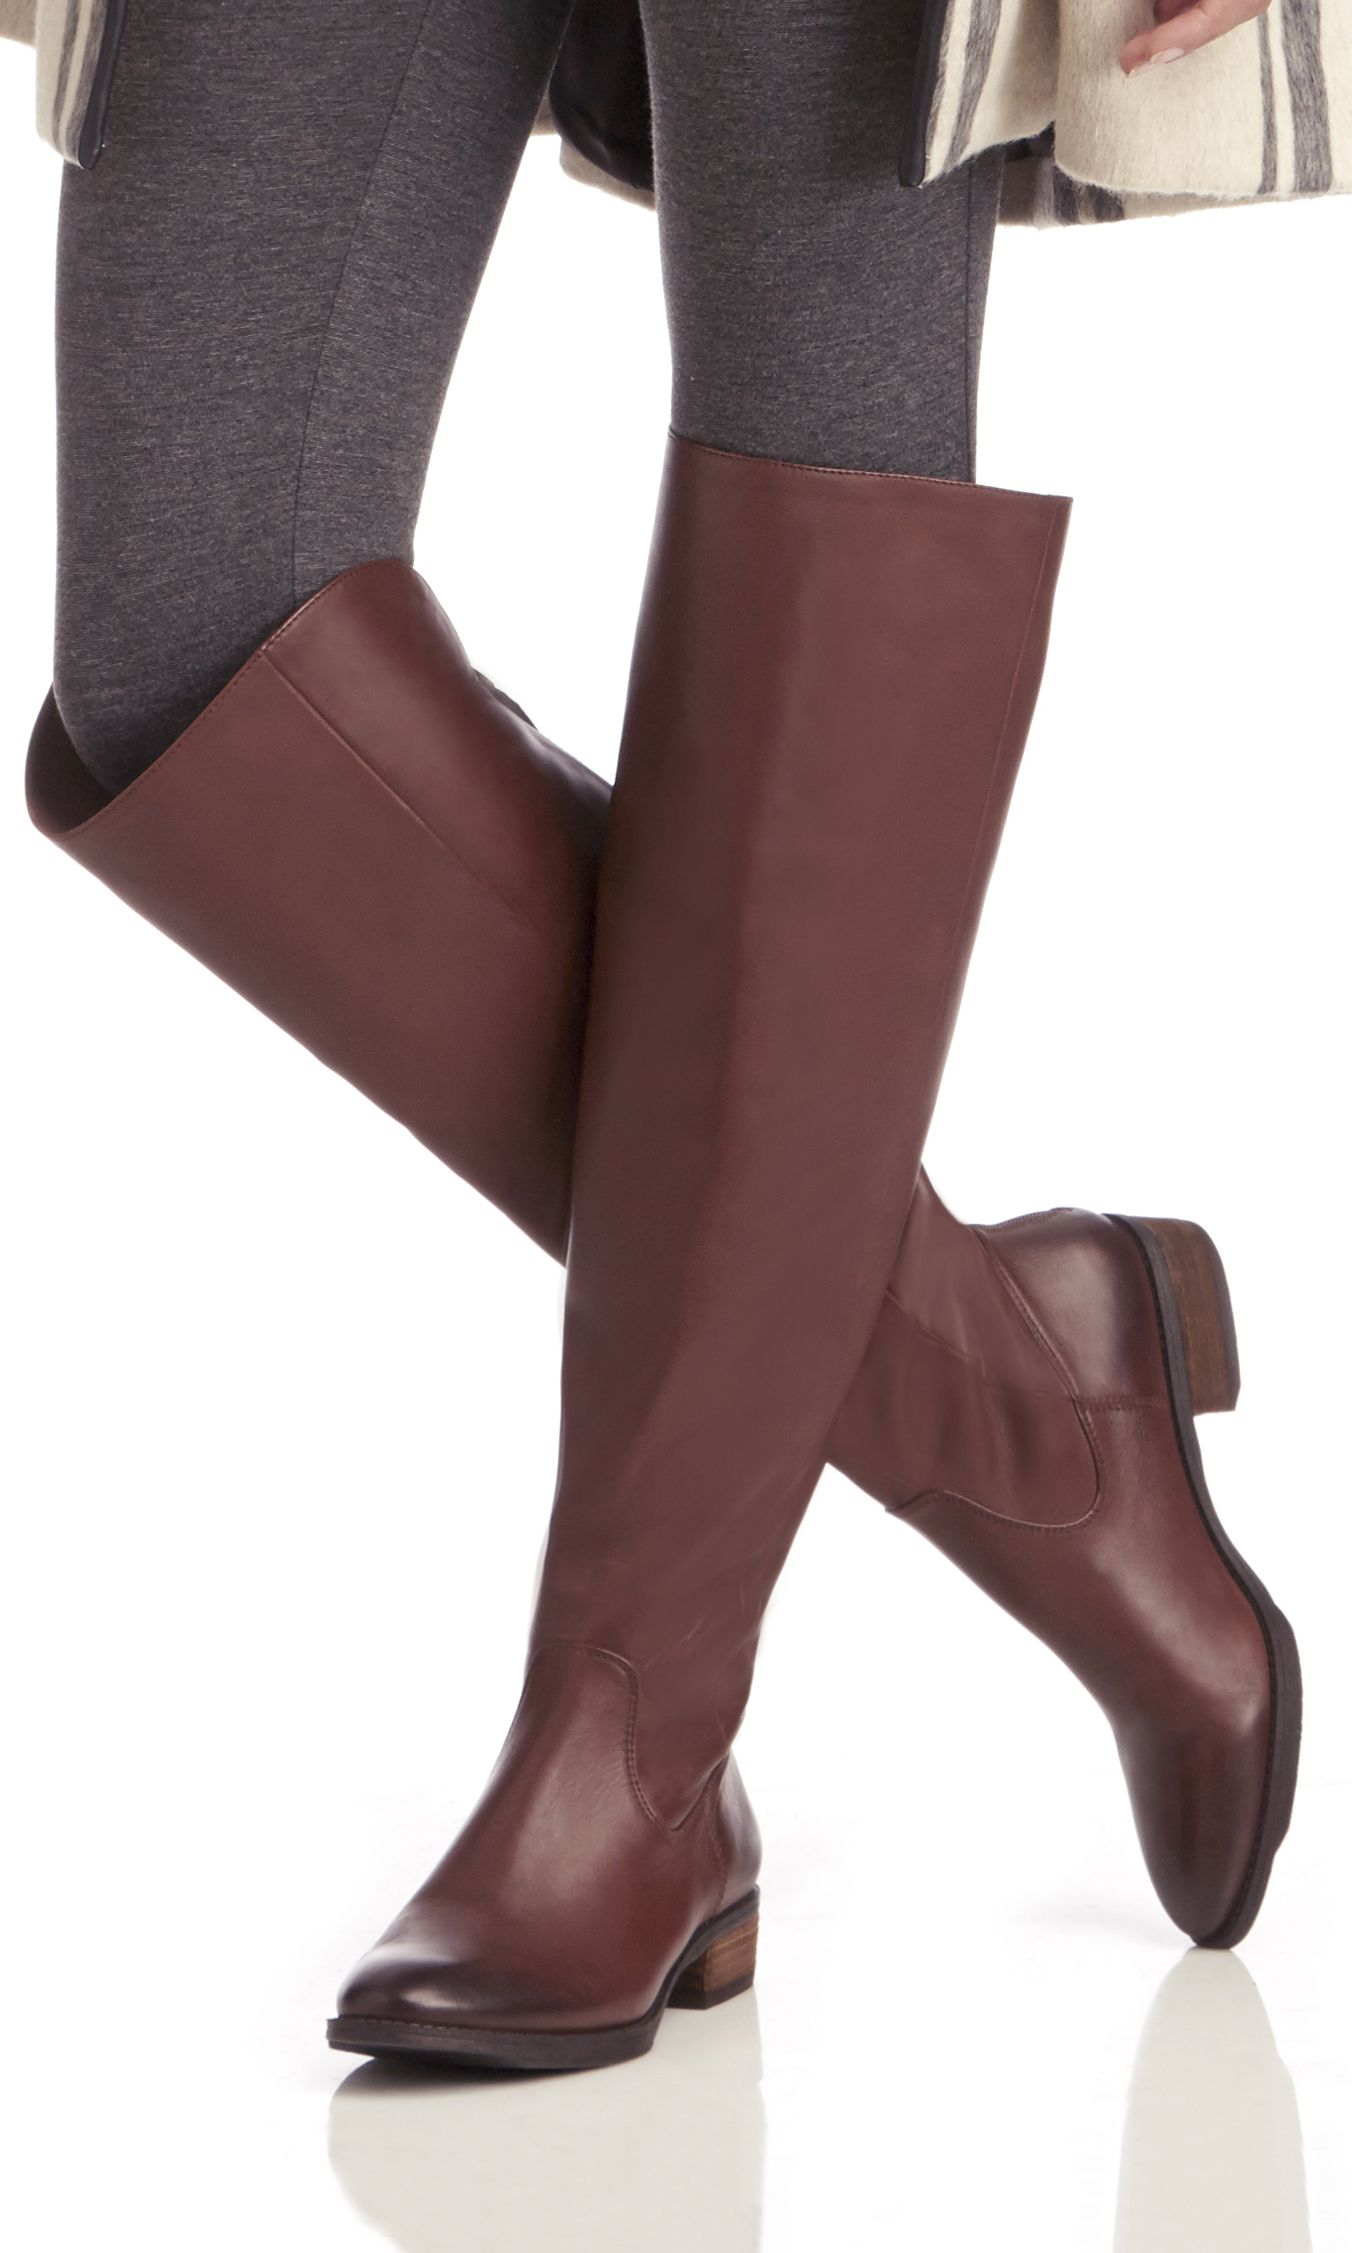 Luxurious leather over-the-knee riding boots with an almond toe, back zipper and stacked heel. An equestrian-inspired classic.